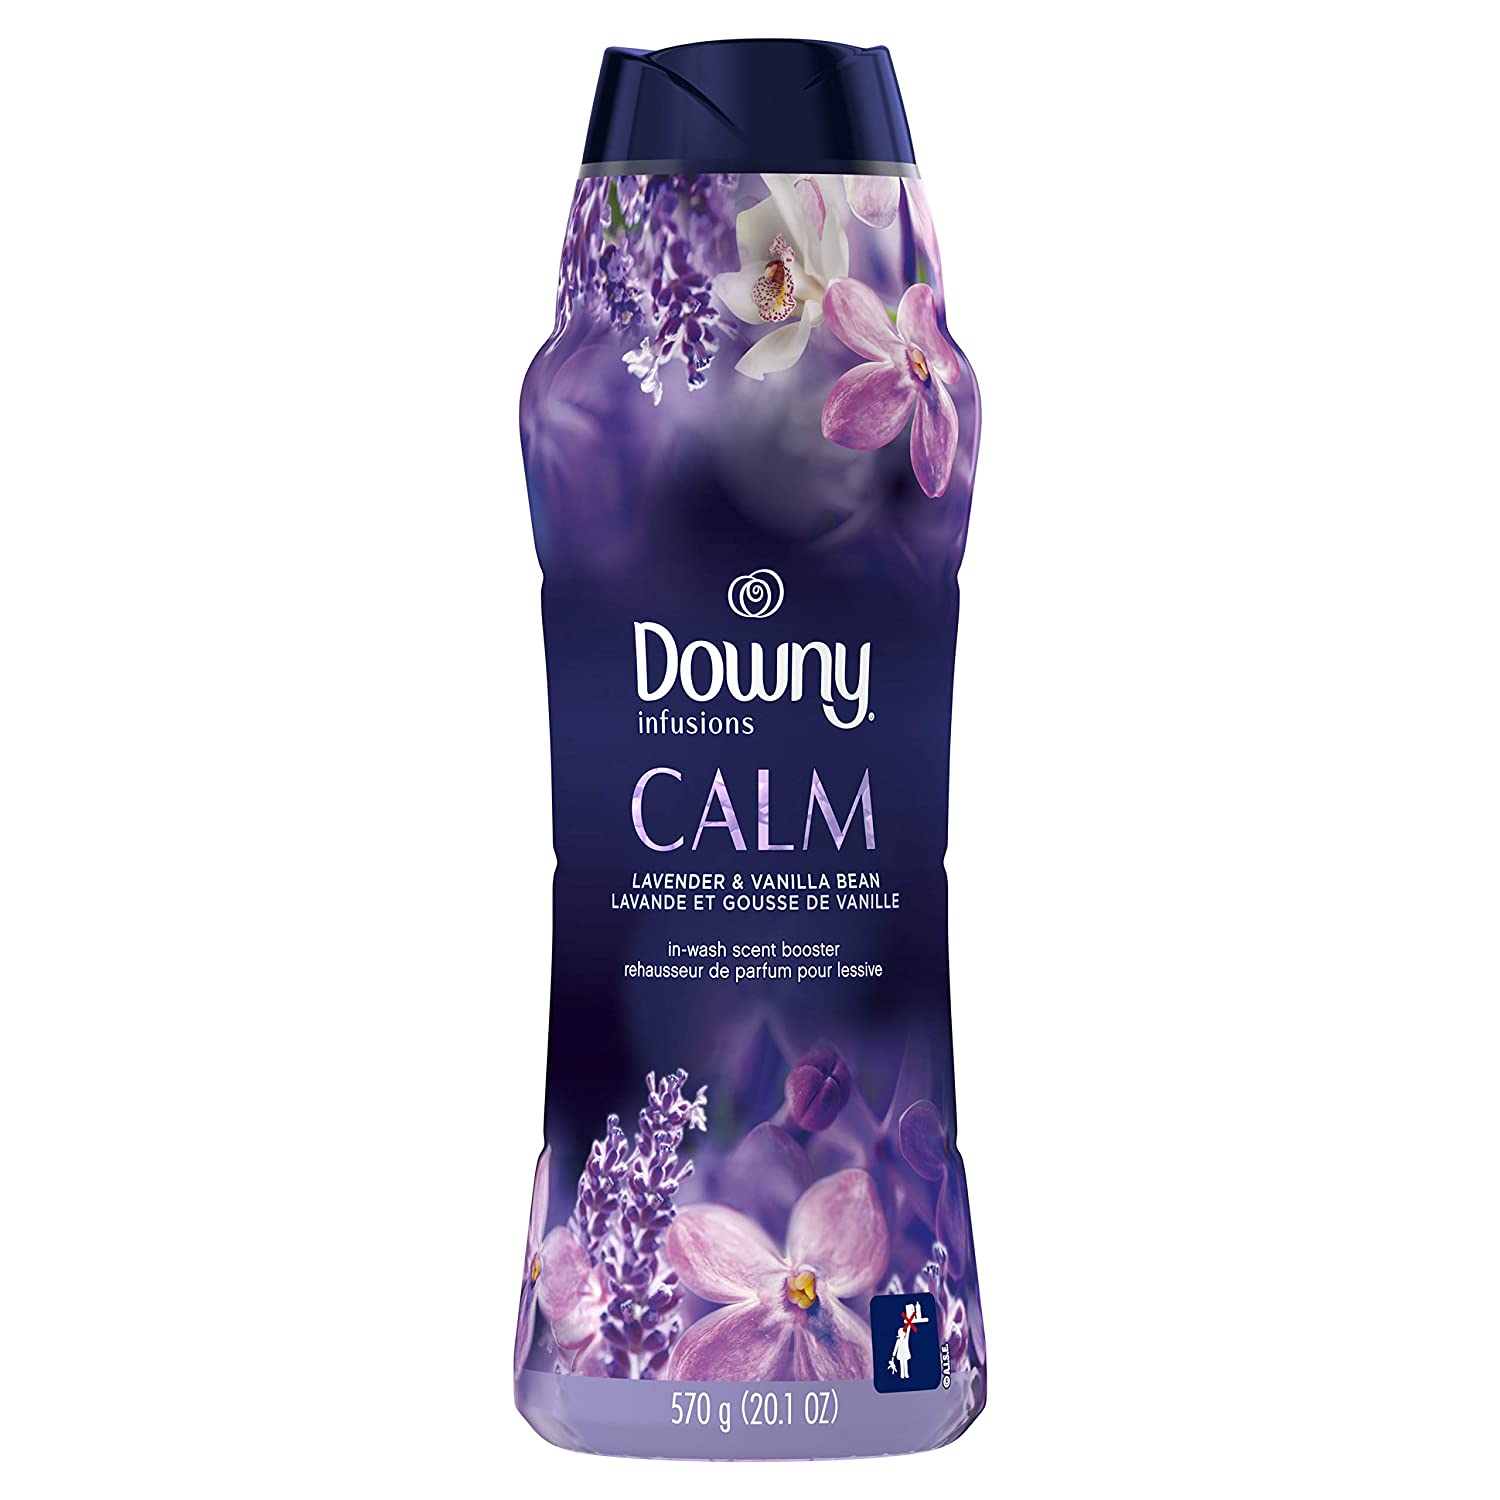 Downy Infusions in-Wash Scent Booster Beads, Calm, Lavender & Vanilla Bean, 20.1 Oz